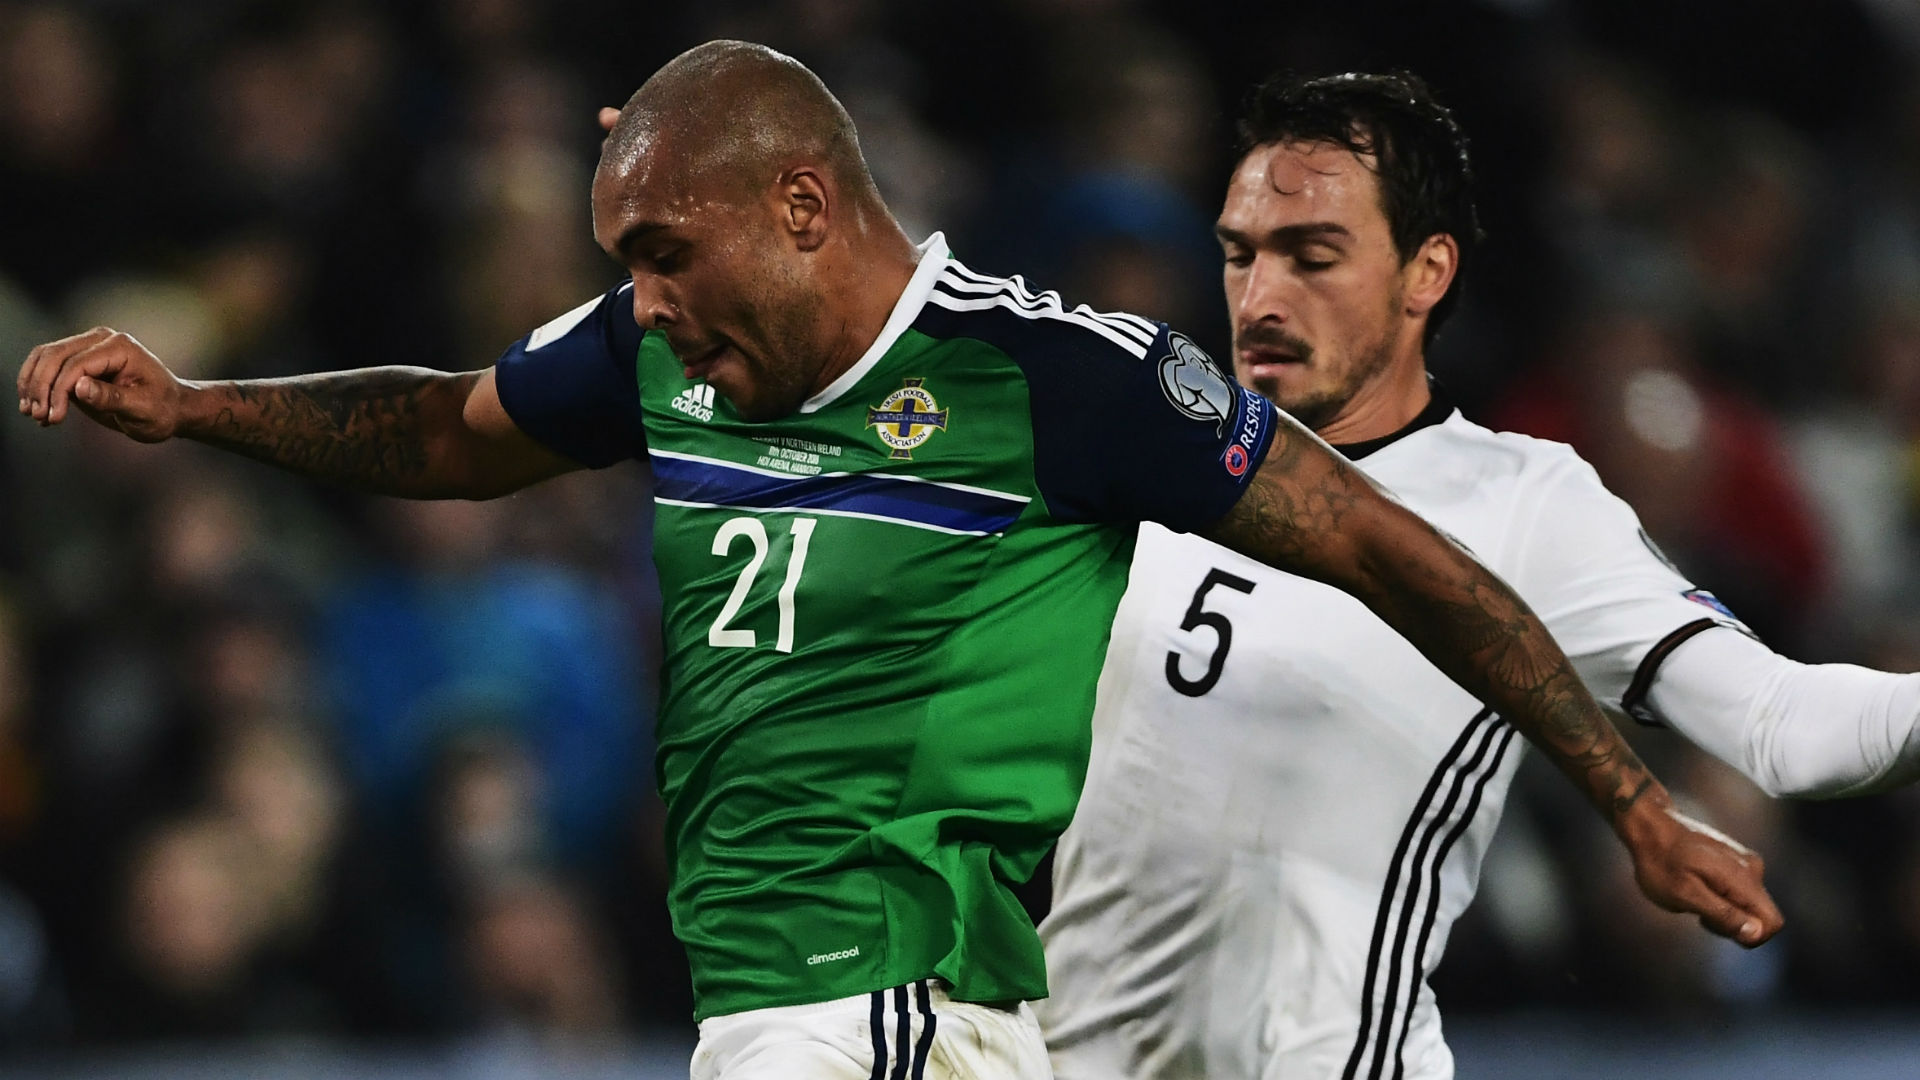 Josh Magennis Northern Ireland Mats Hummels Germany 2016